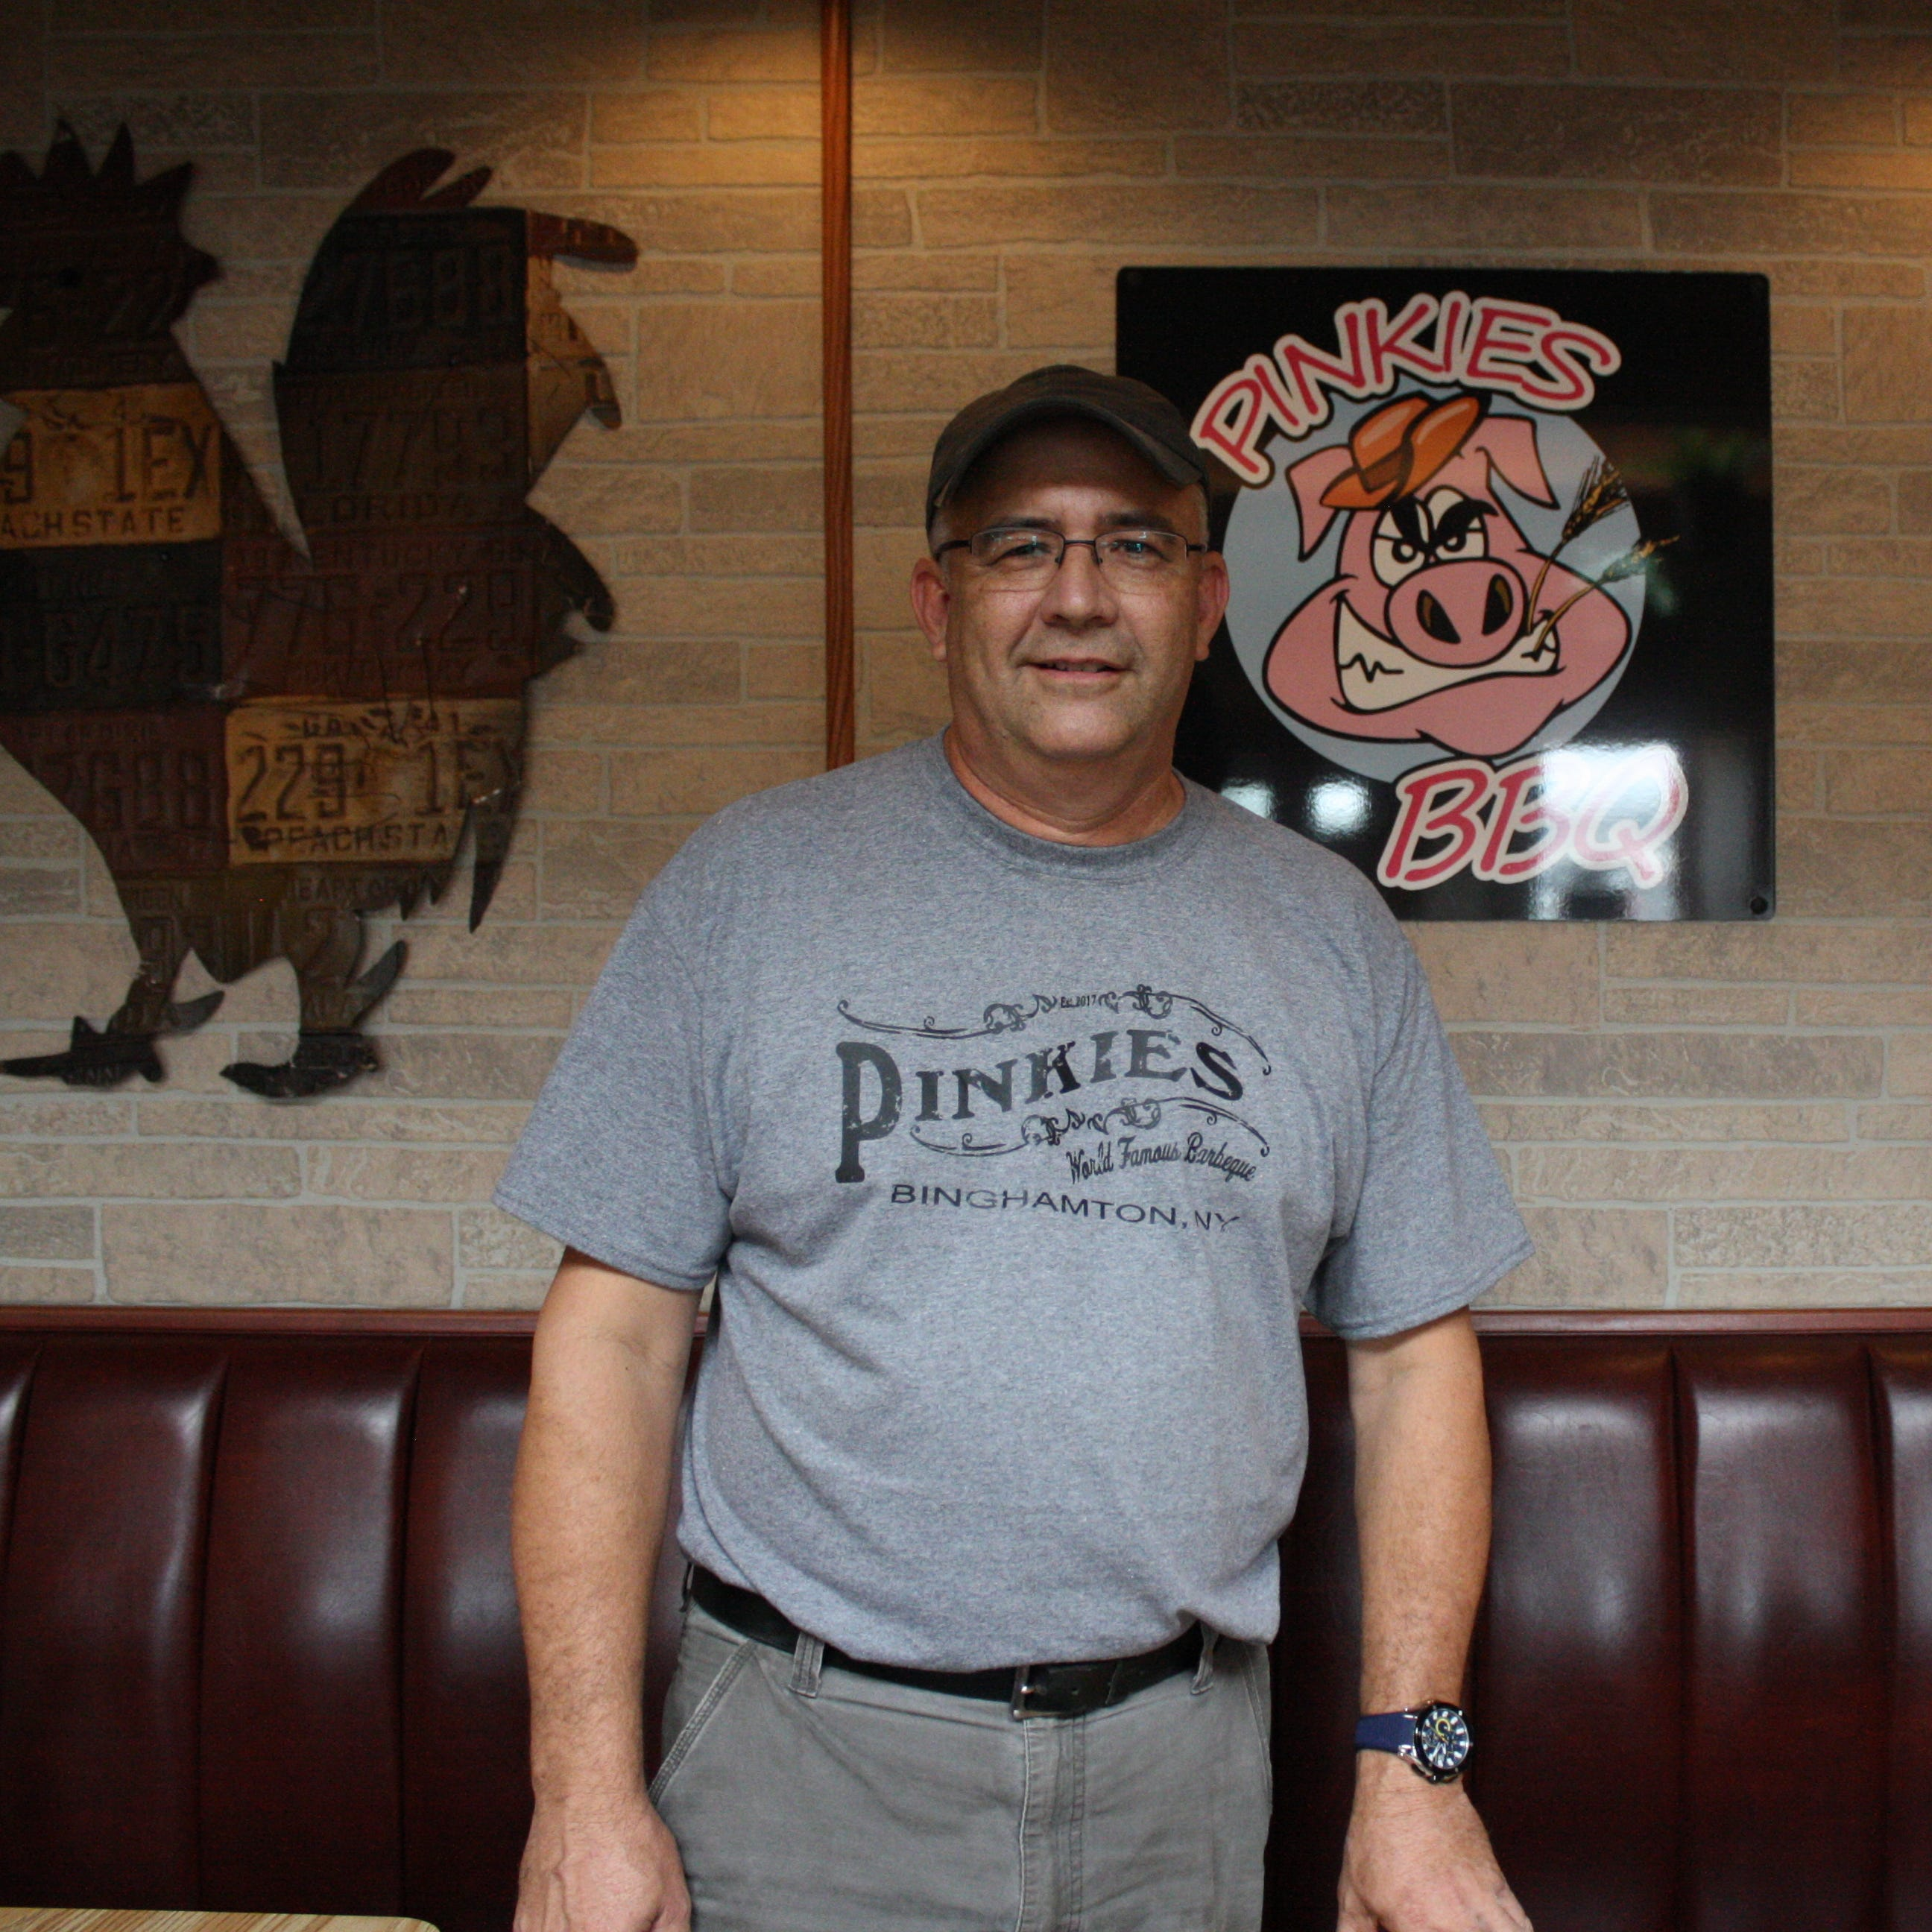 Binghamton barbecue joint's secret star: A prize-winning taco